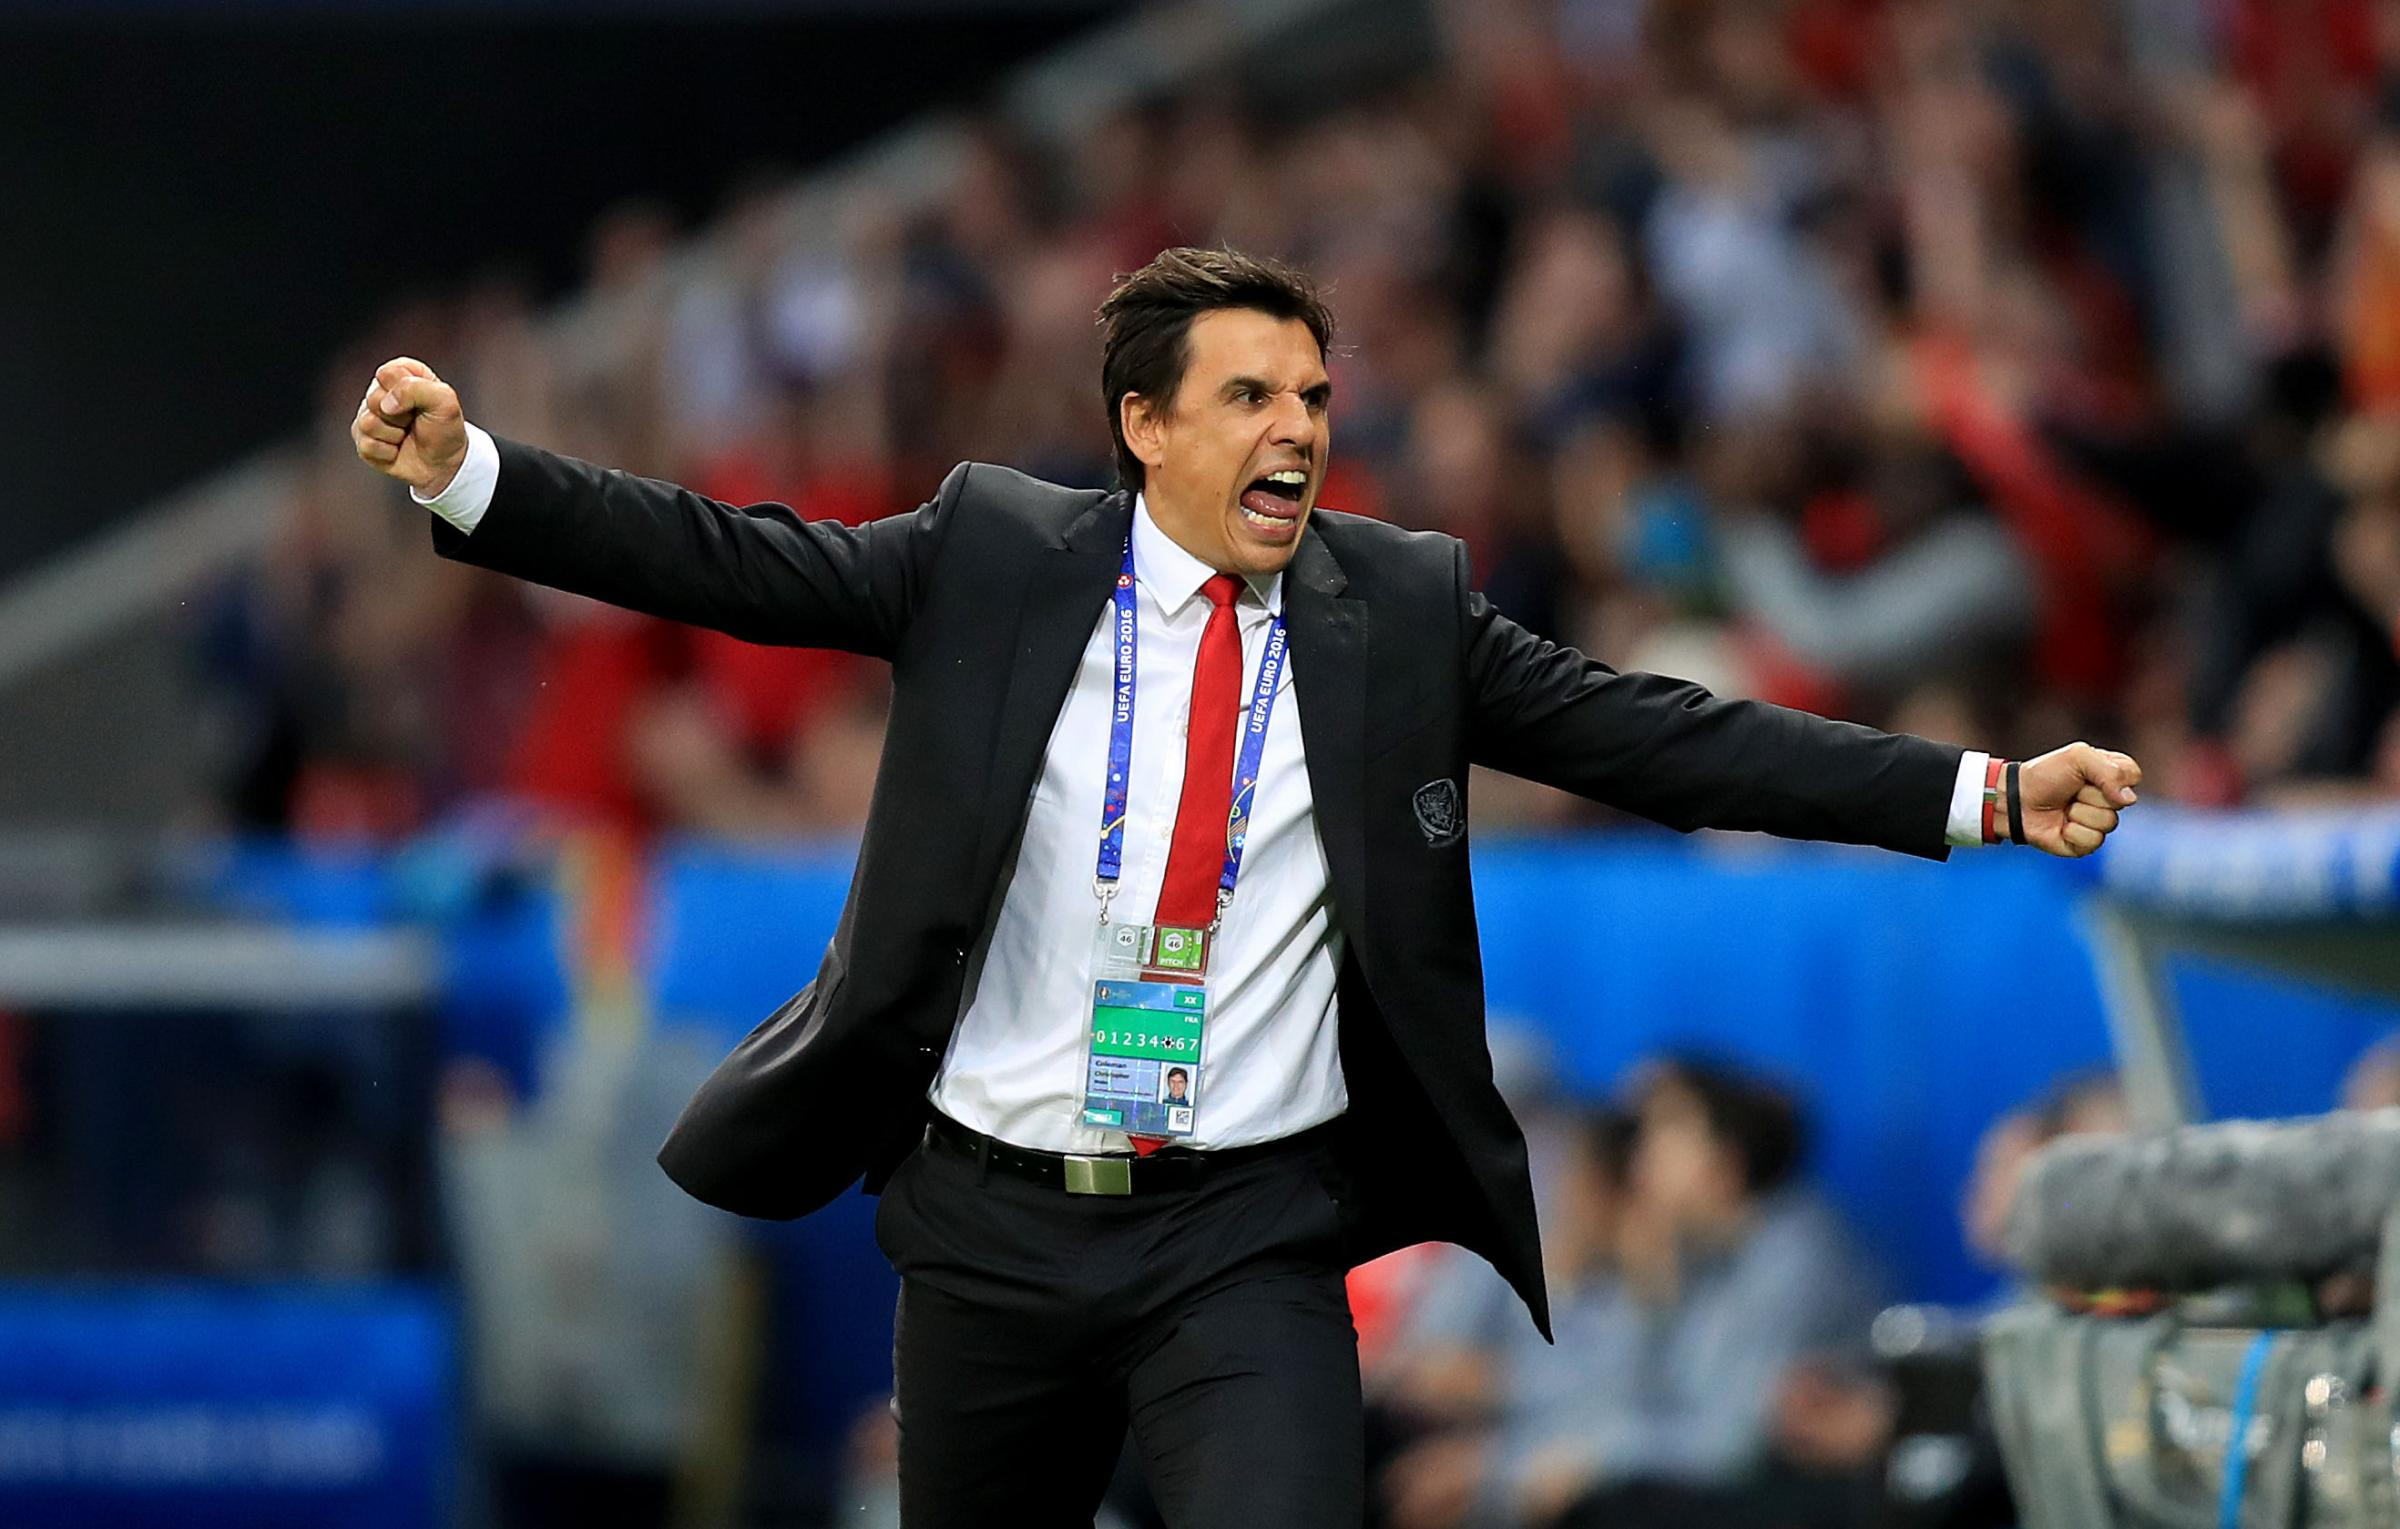 FAREWELL: Chris Coleman's success at Euro 2016 will never be forgotten by Welsh fans but it's time to focus on the future